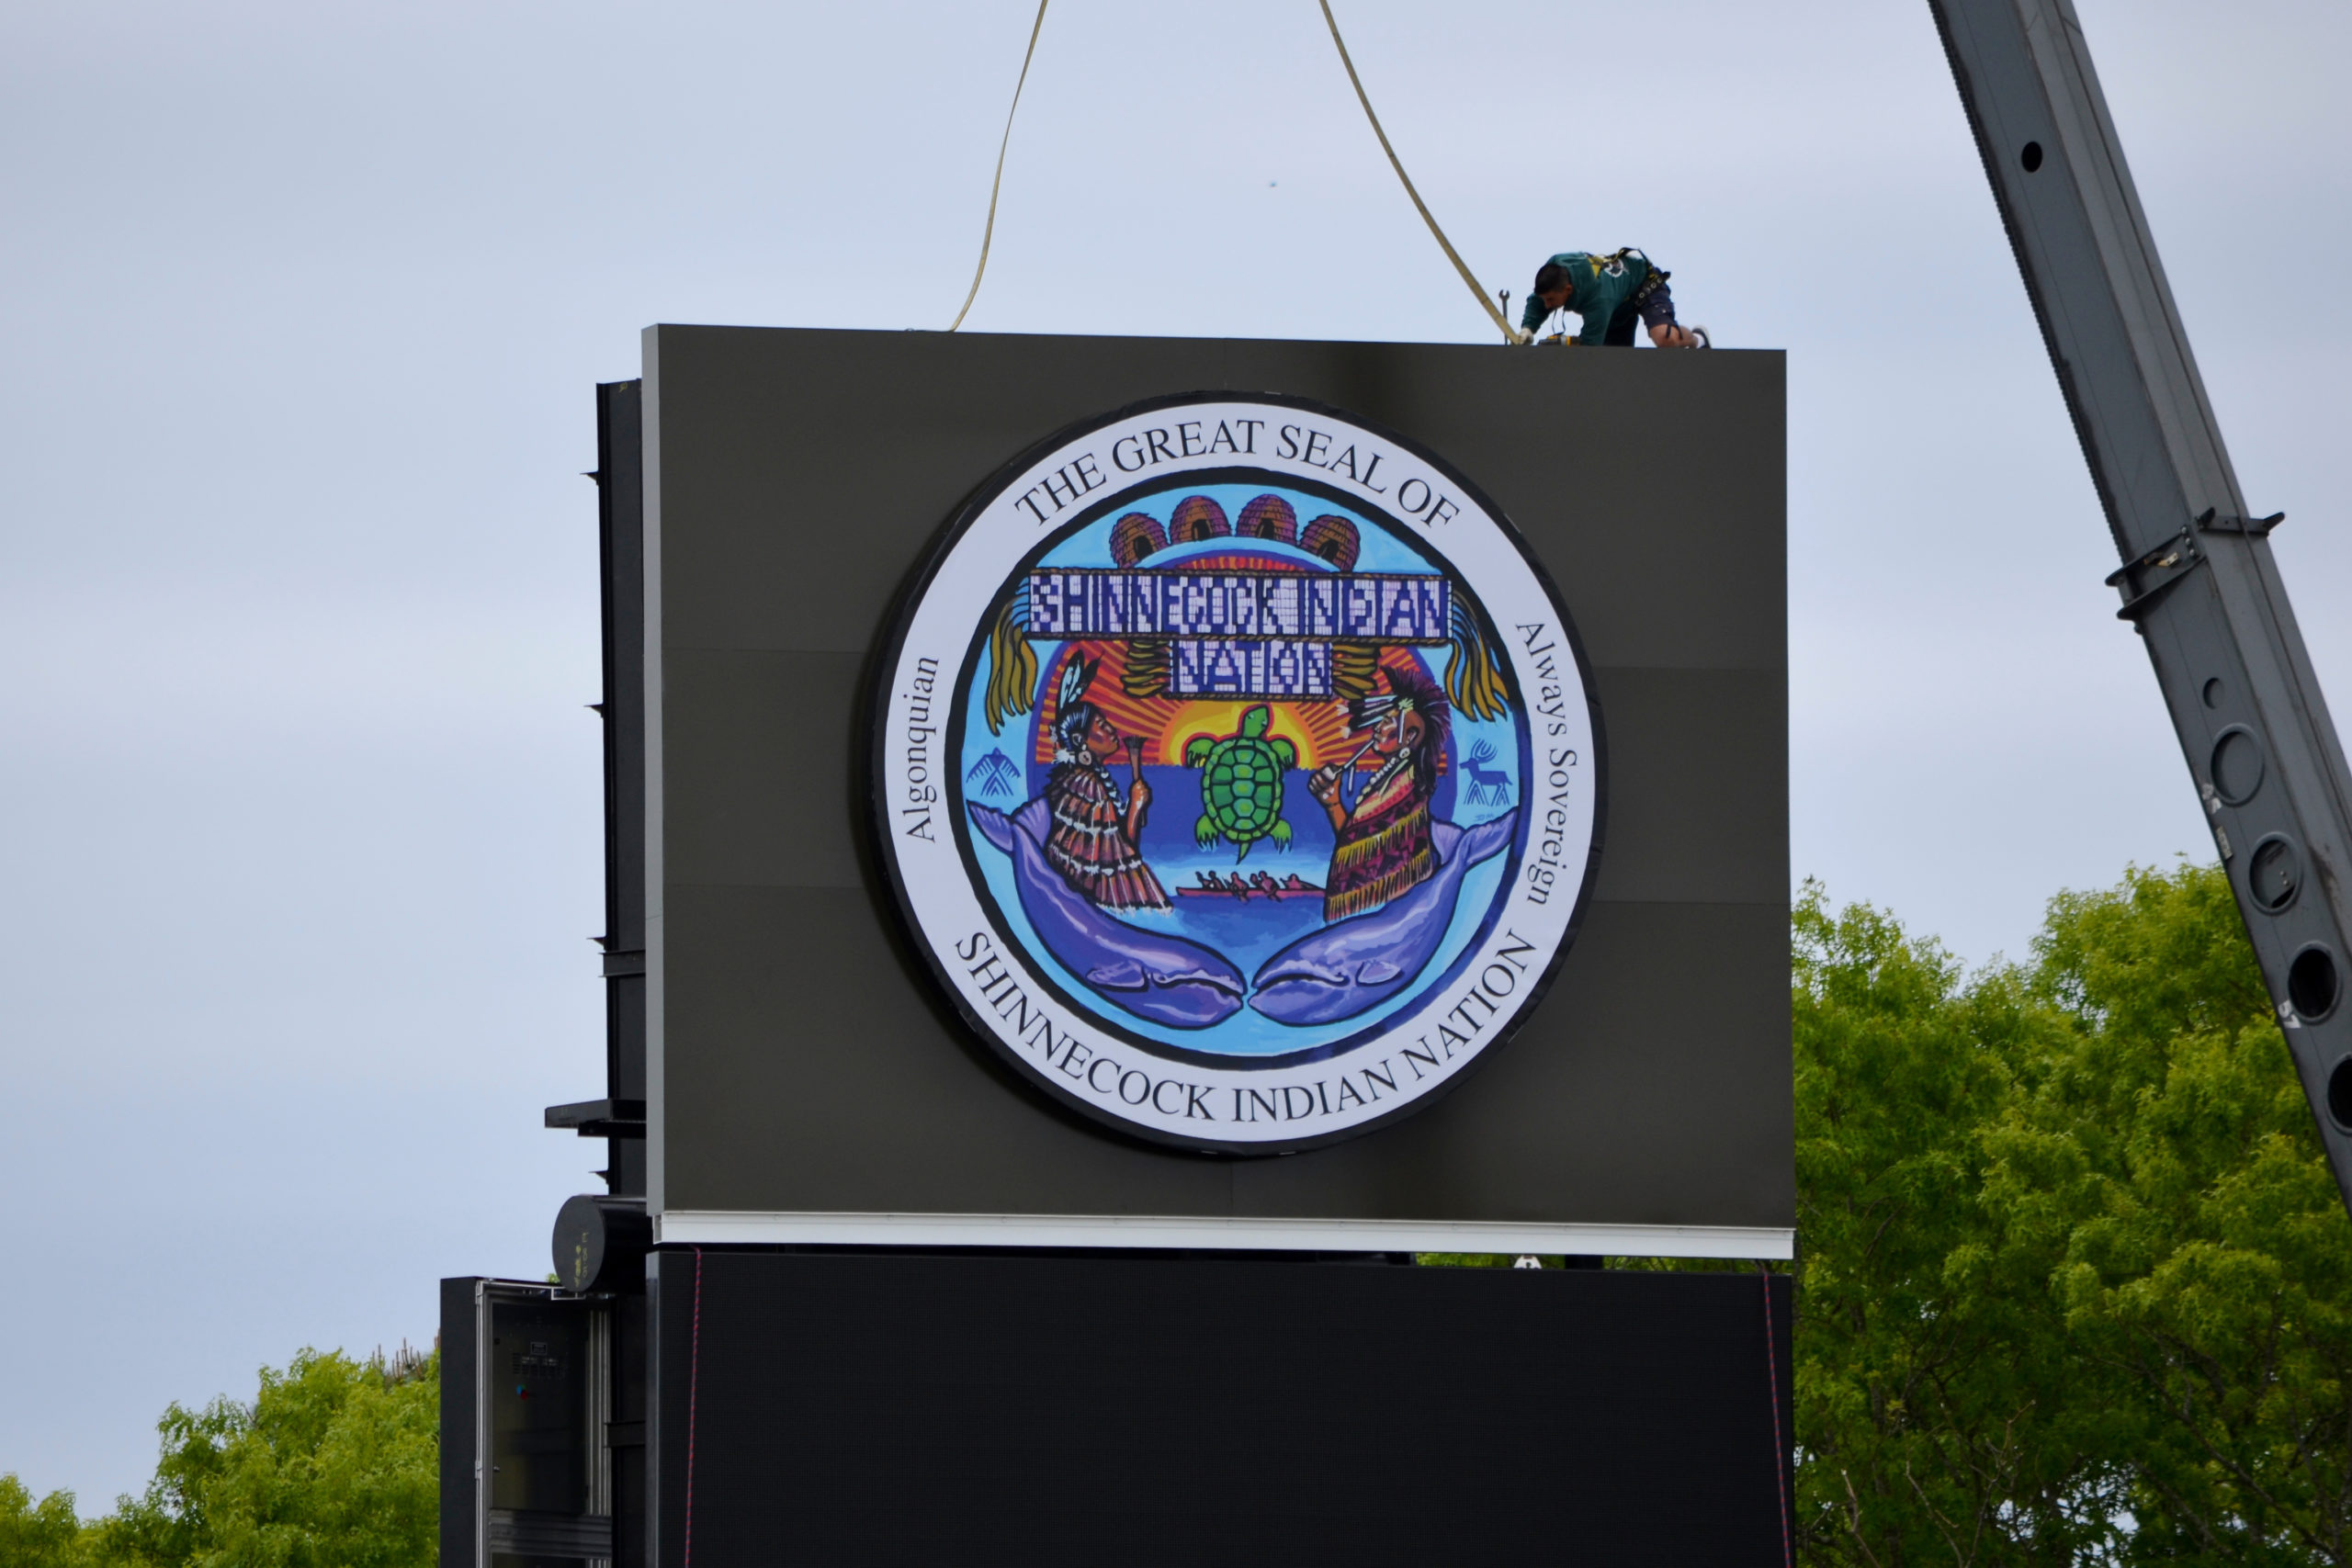 Sign Controversy May 2 - The Shinnecock Indian Nation began constructing two 61-foot-tall electronic billboards at the same site on Sunrise Highway and were sued by the State Department of Transportation for failing to obtain state work permits for the project. Tribal leaders claimed that their federal recognition meant that they did not have to obtain approvals from the state for work done on tribal land. The legal battle continues.